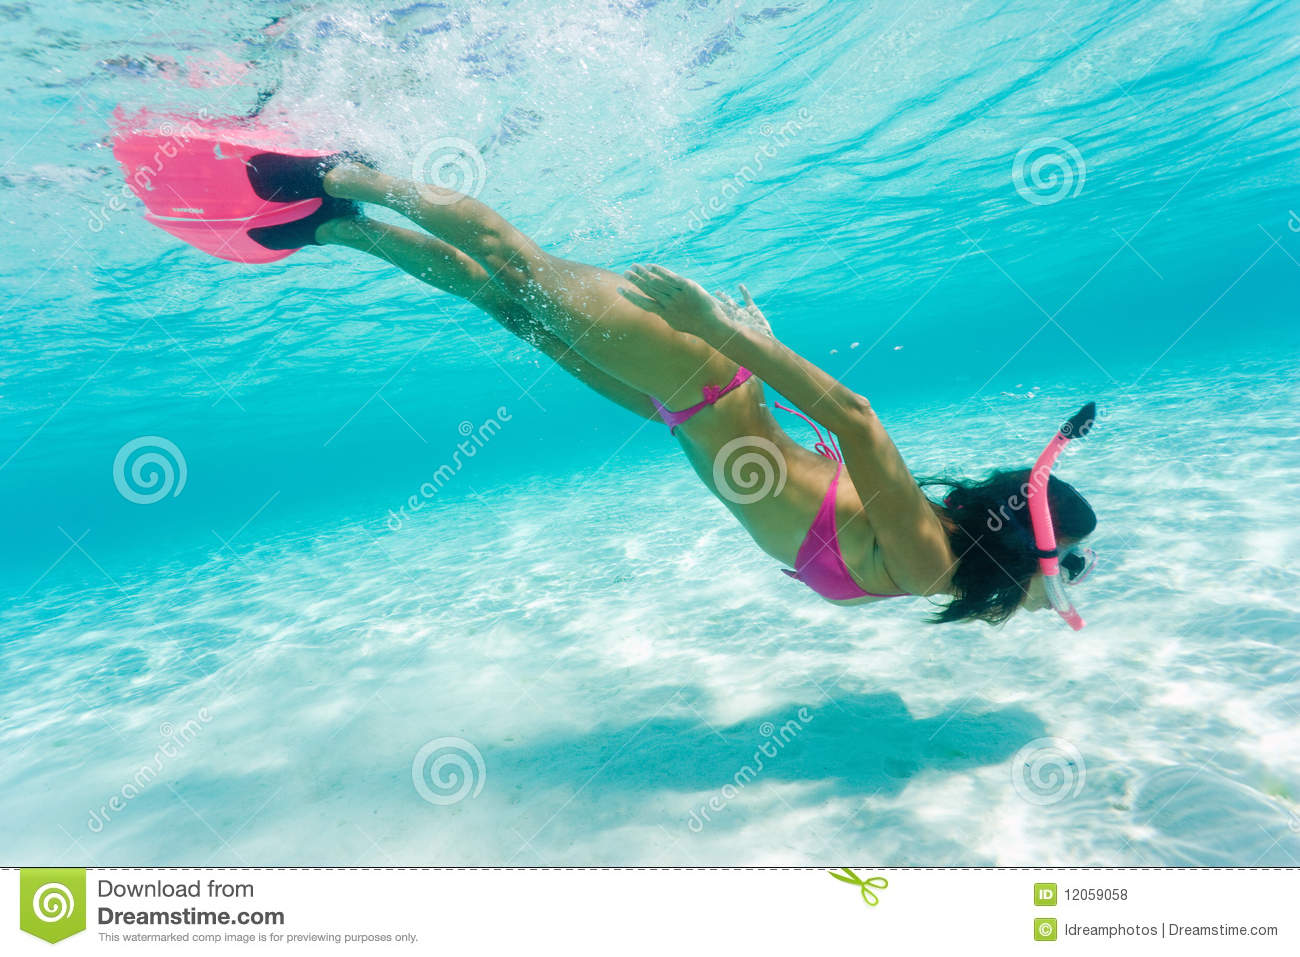 Royalty Free Stock Photos Female Snorkeling Image12059058 on diving snorkling